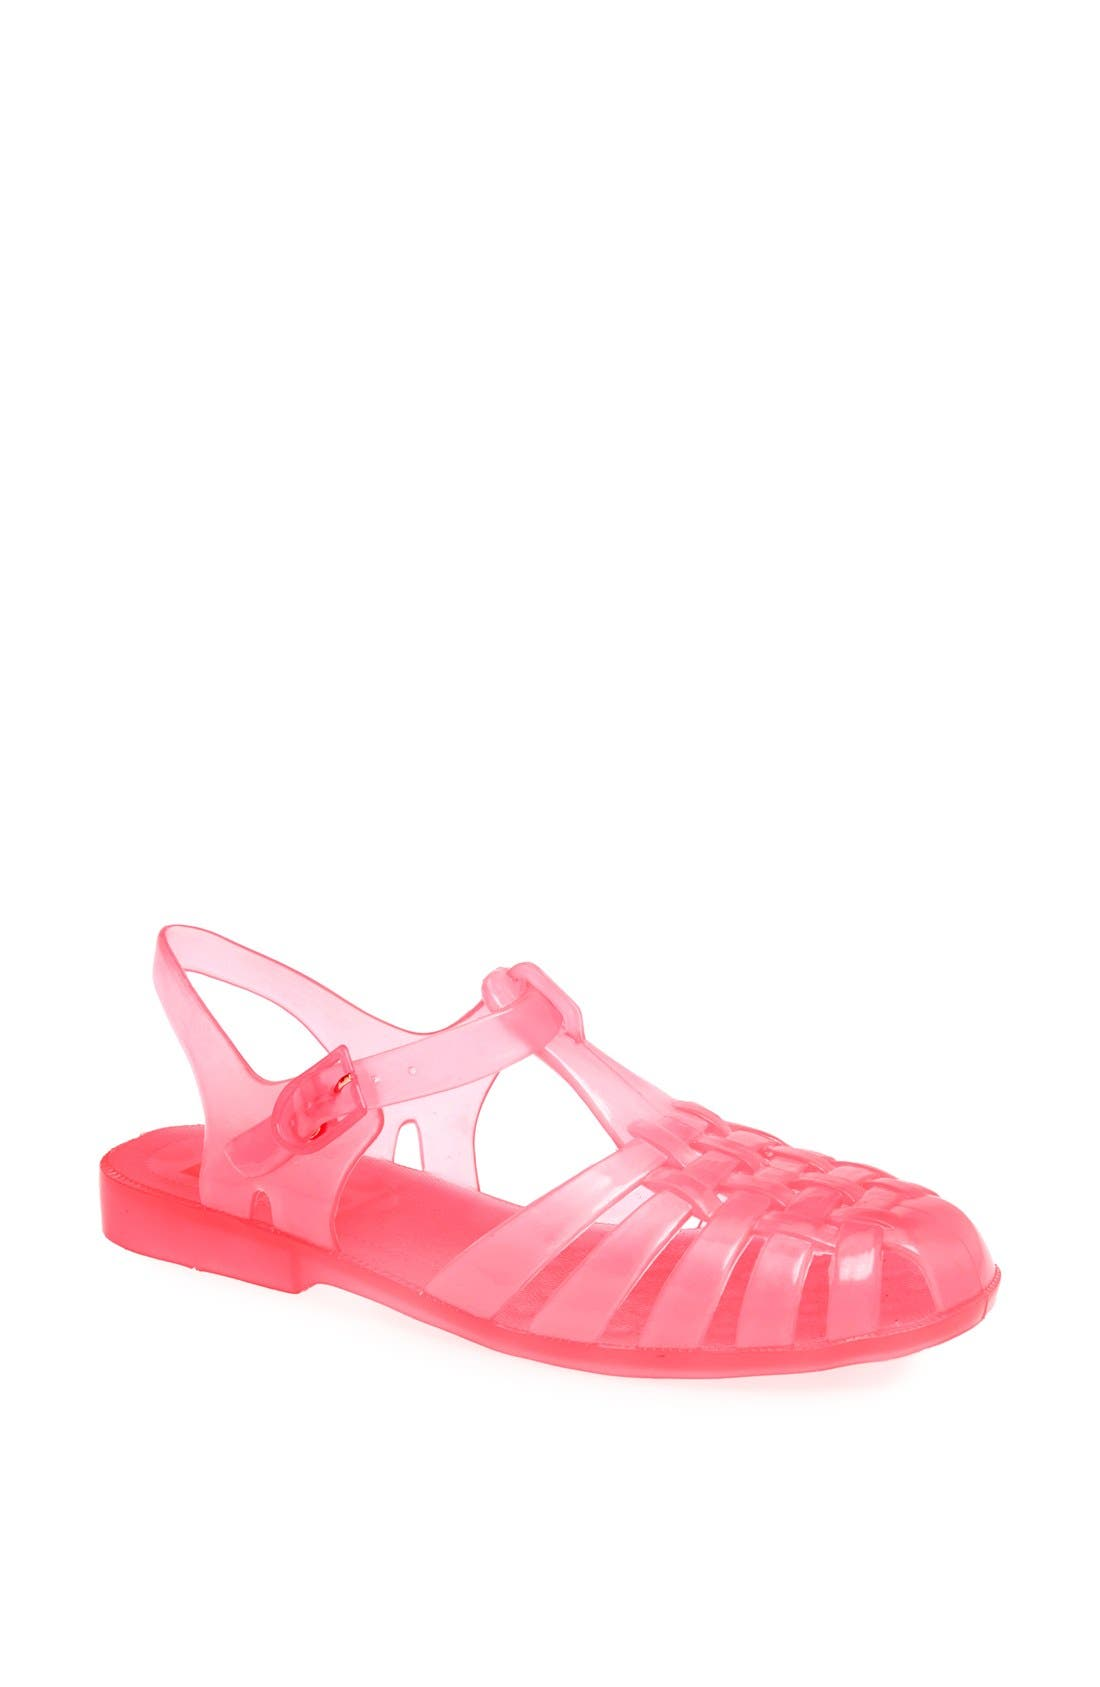 Main Image - BC Footwear 'In No Time' Jelly Sandal